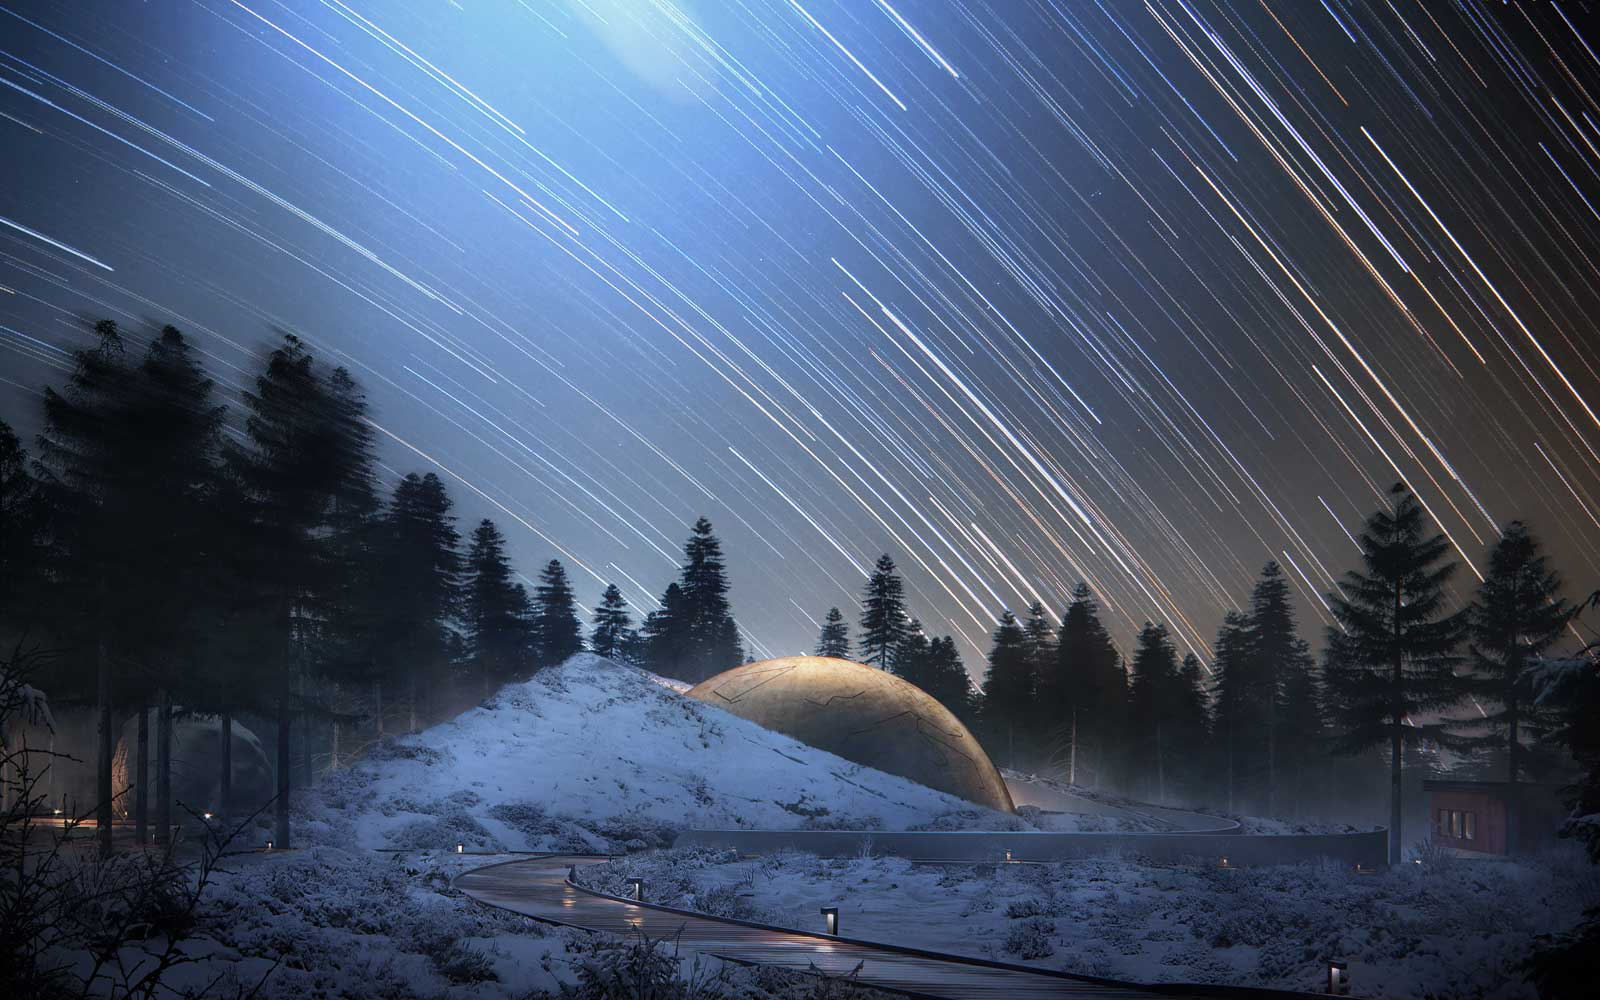 Rendering of the new Snohetta Solobservatoriet planetarium project in Norway